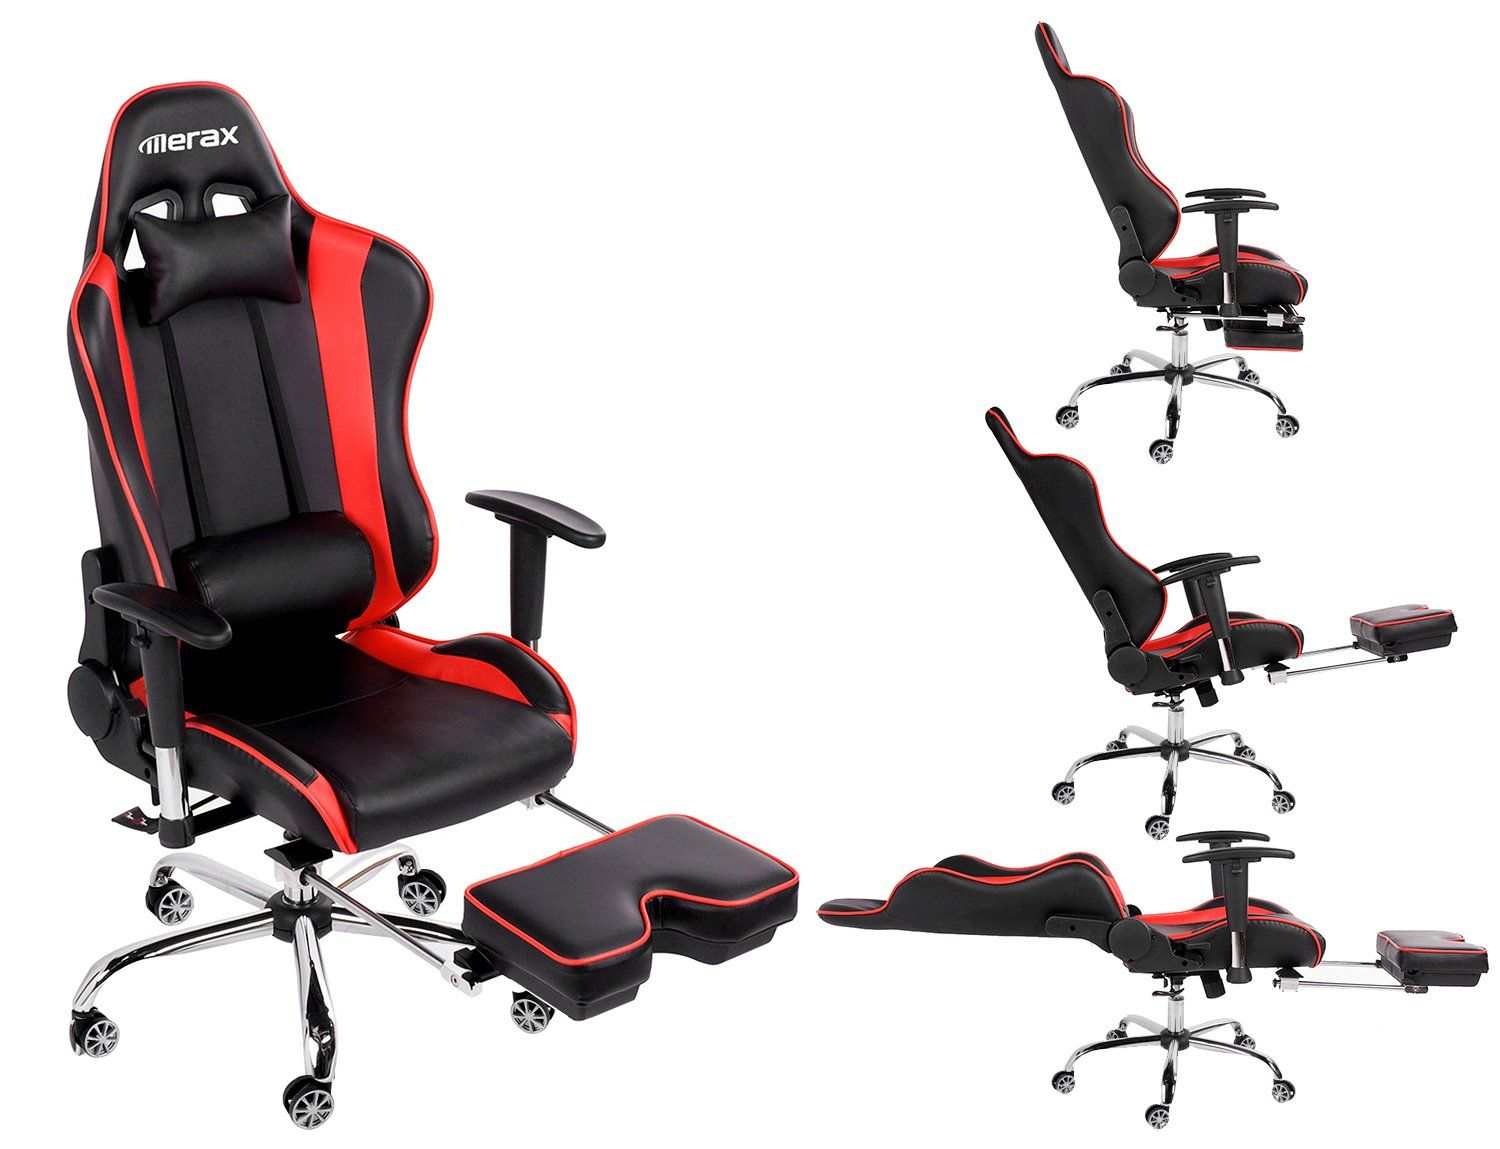 amazon kitchen chairs Amazon com Merax Ergonomic Series Pu Leather Office Chair Racing Chair with Footrest Computer